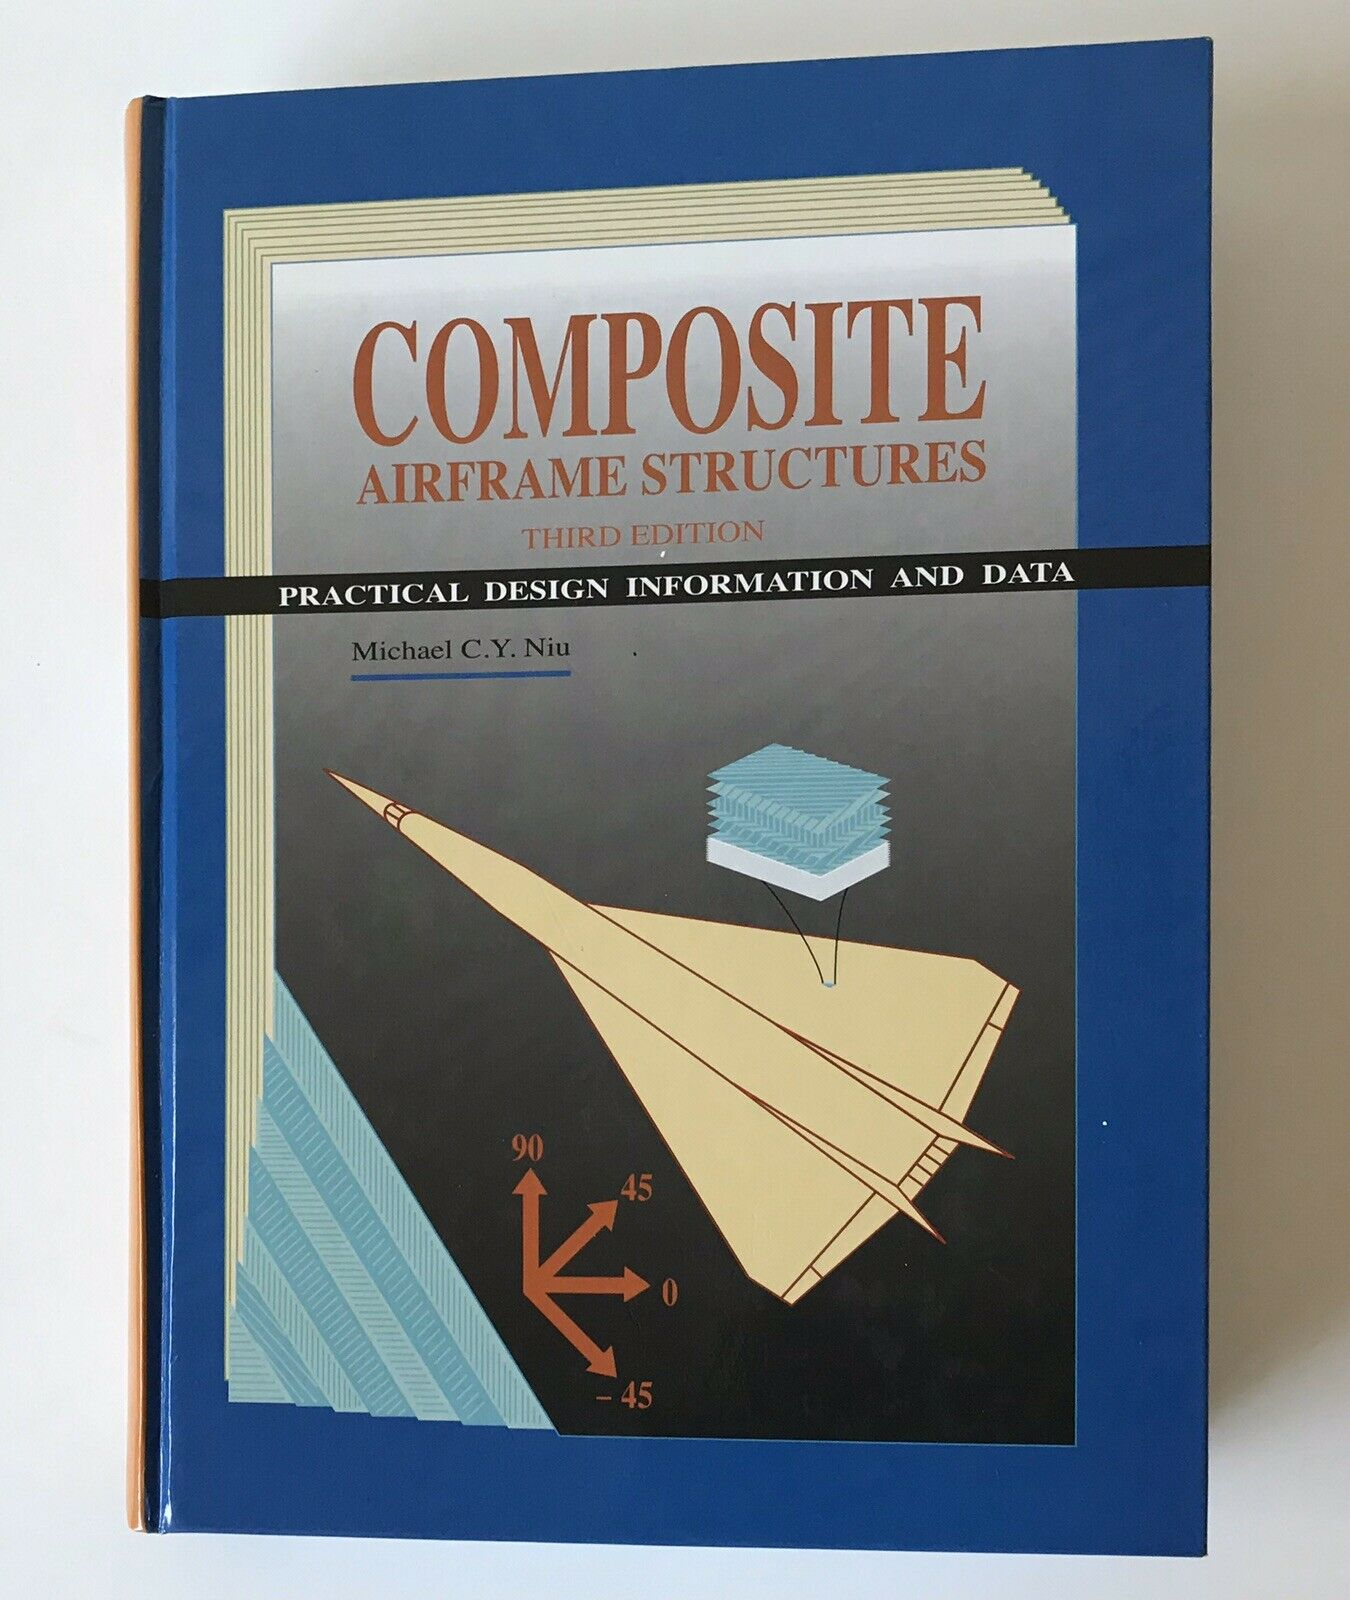 Composite Airframe Structures 1992 Hardcover For Sale Online Ebay